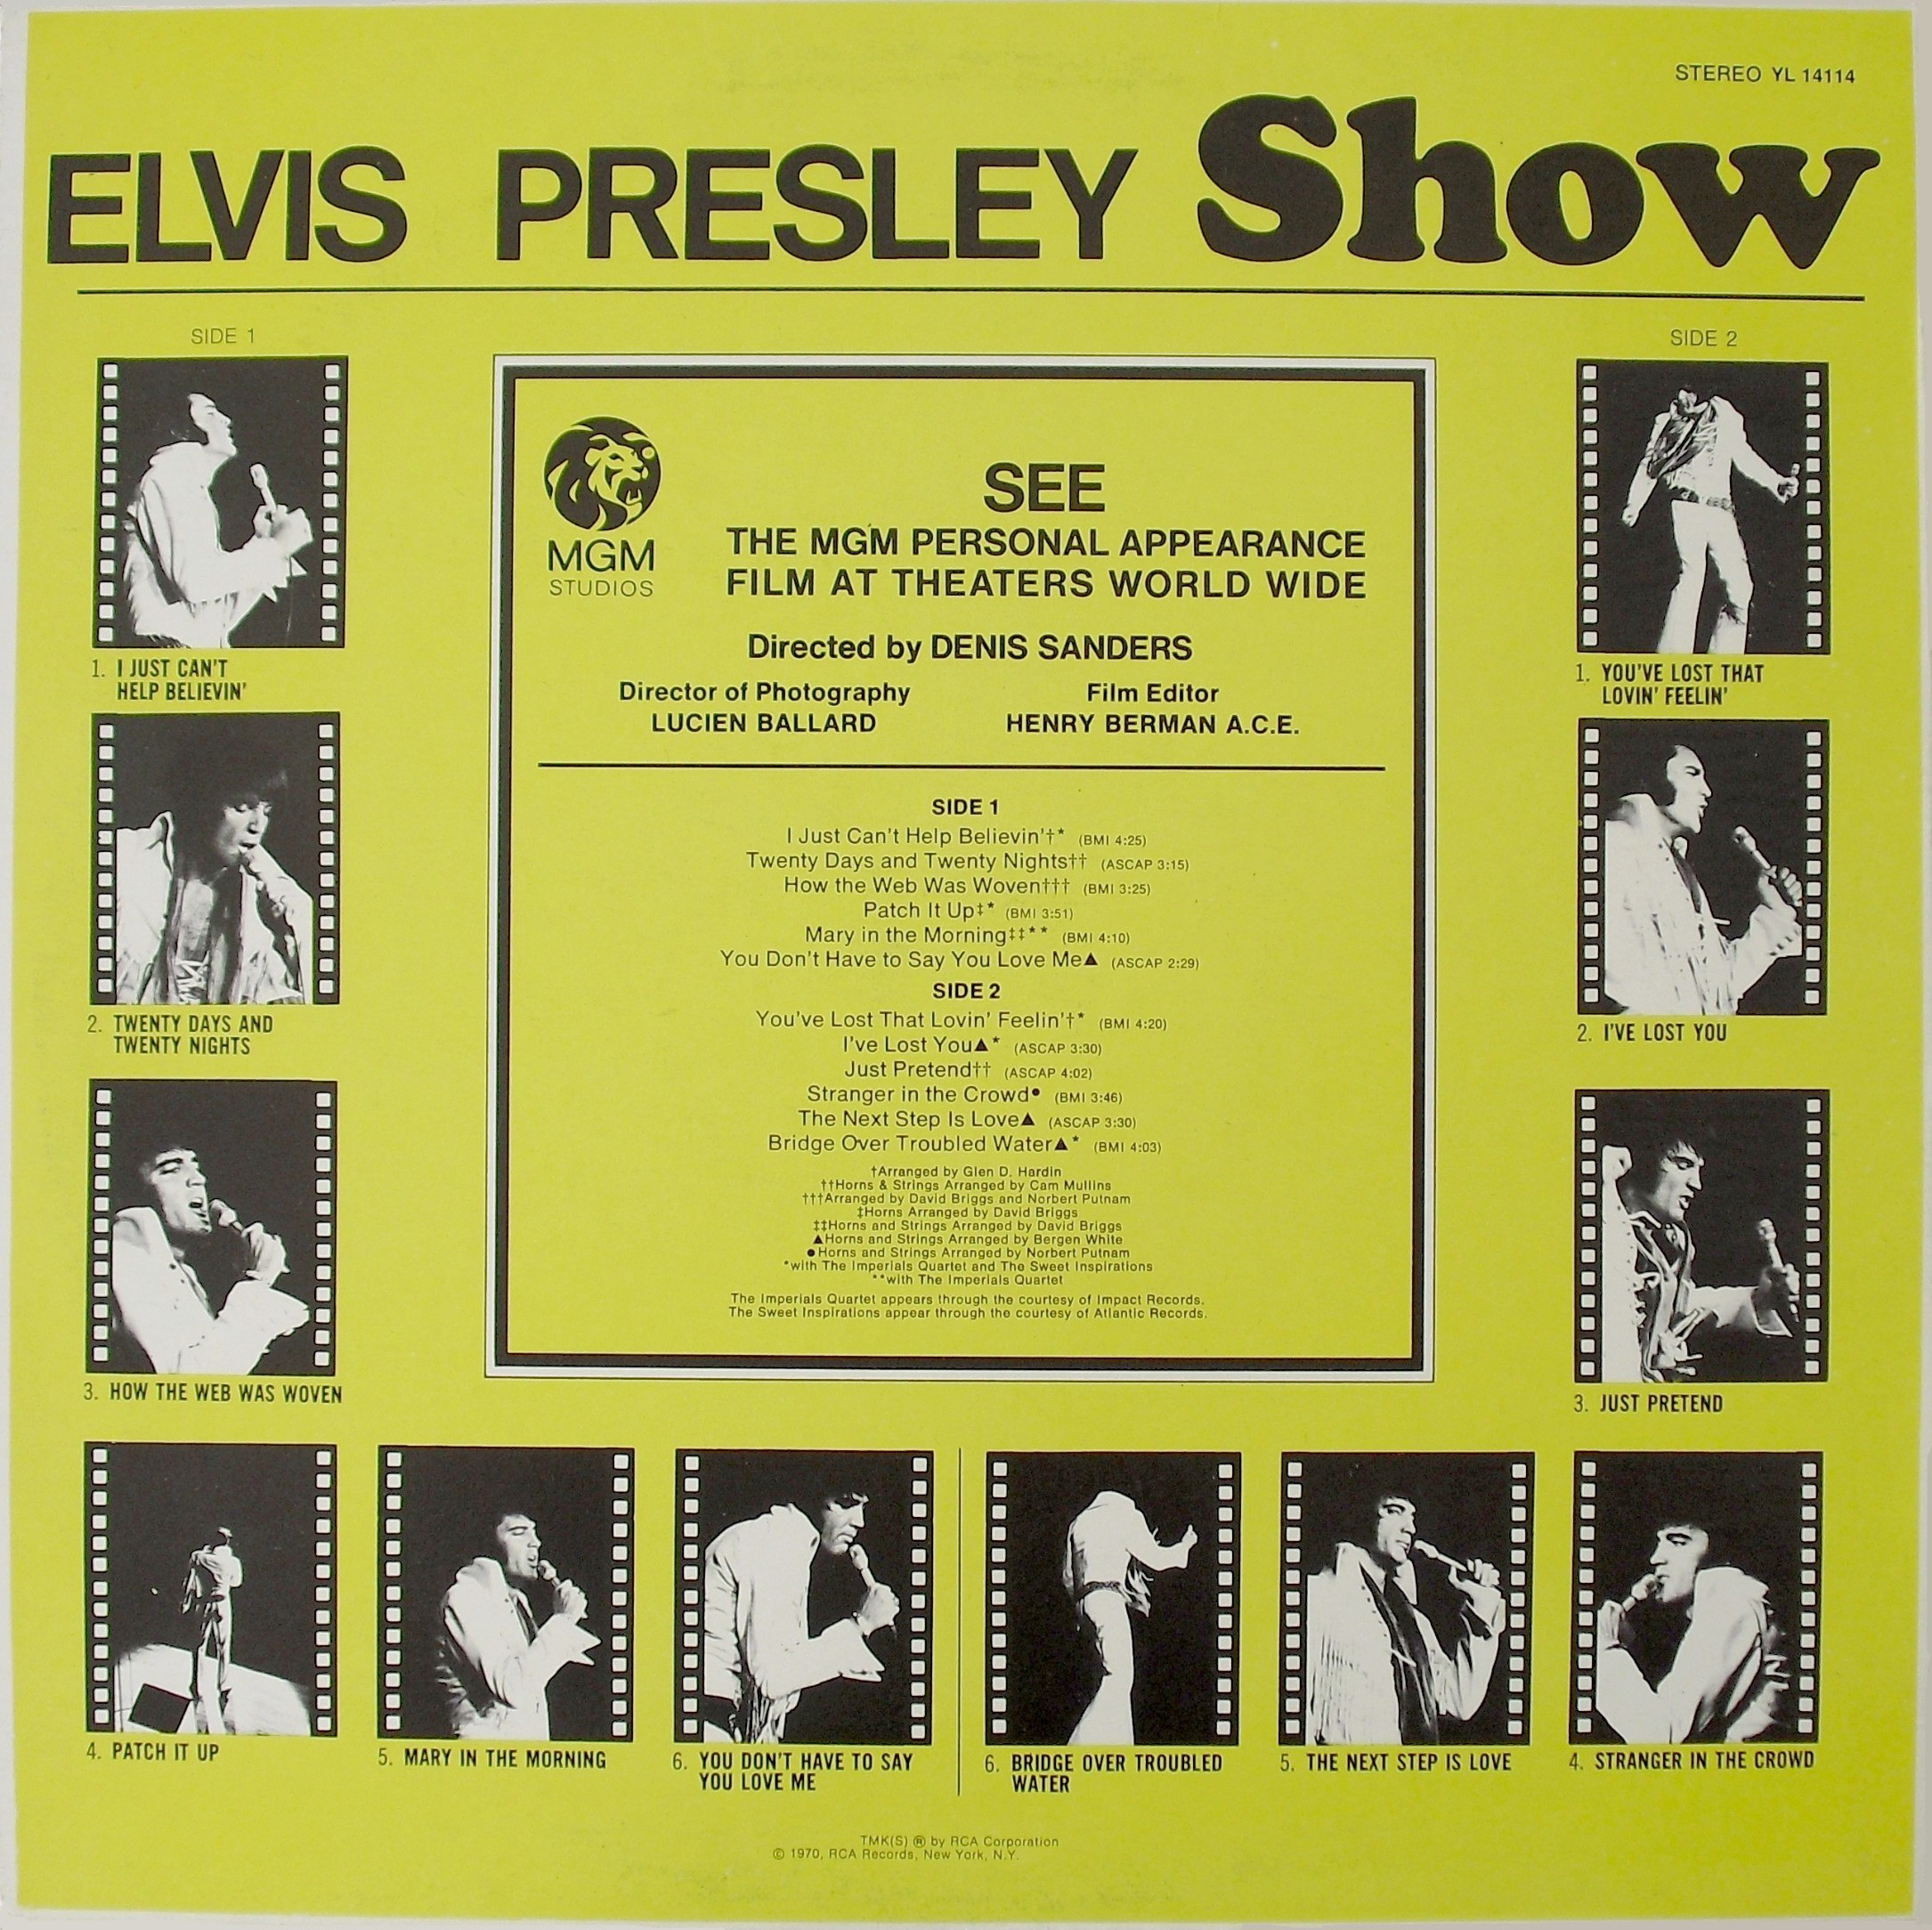 ELVIS PRESLEY SHOW (THAT`S THE WAY IT IS) 02grurh